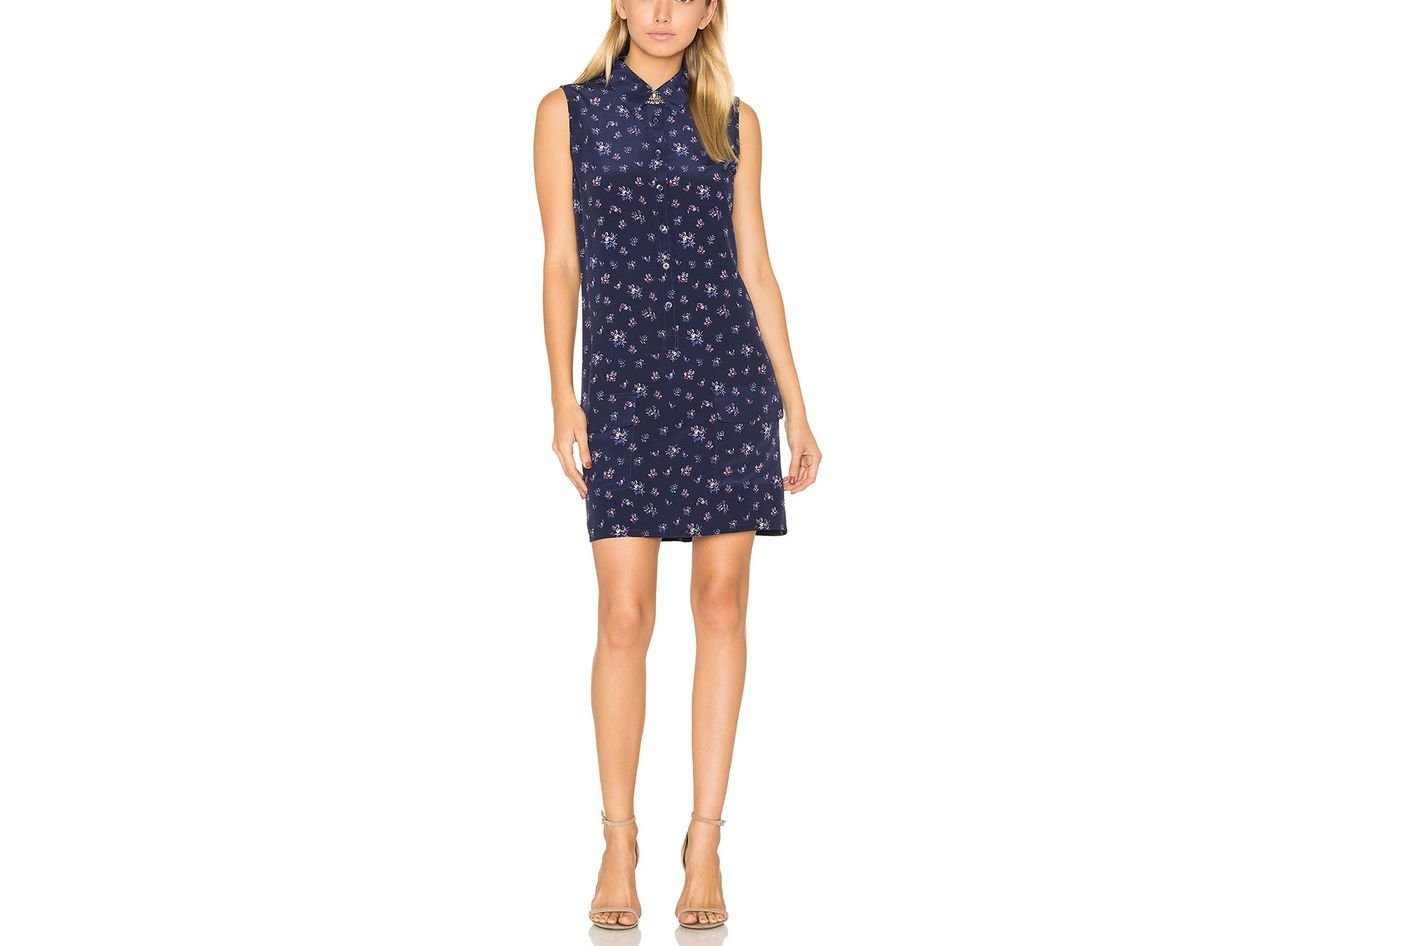 Equipment Lucida Floral Print Dress